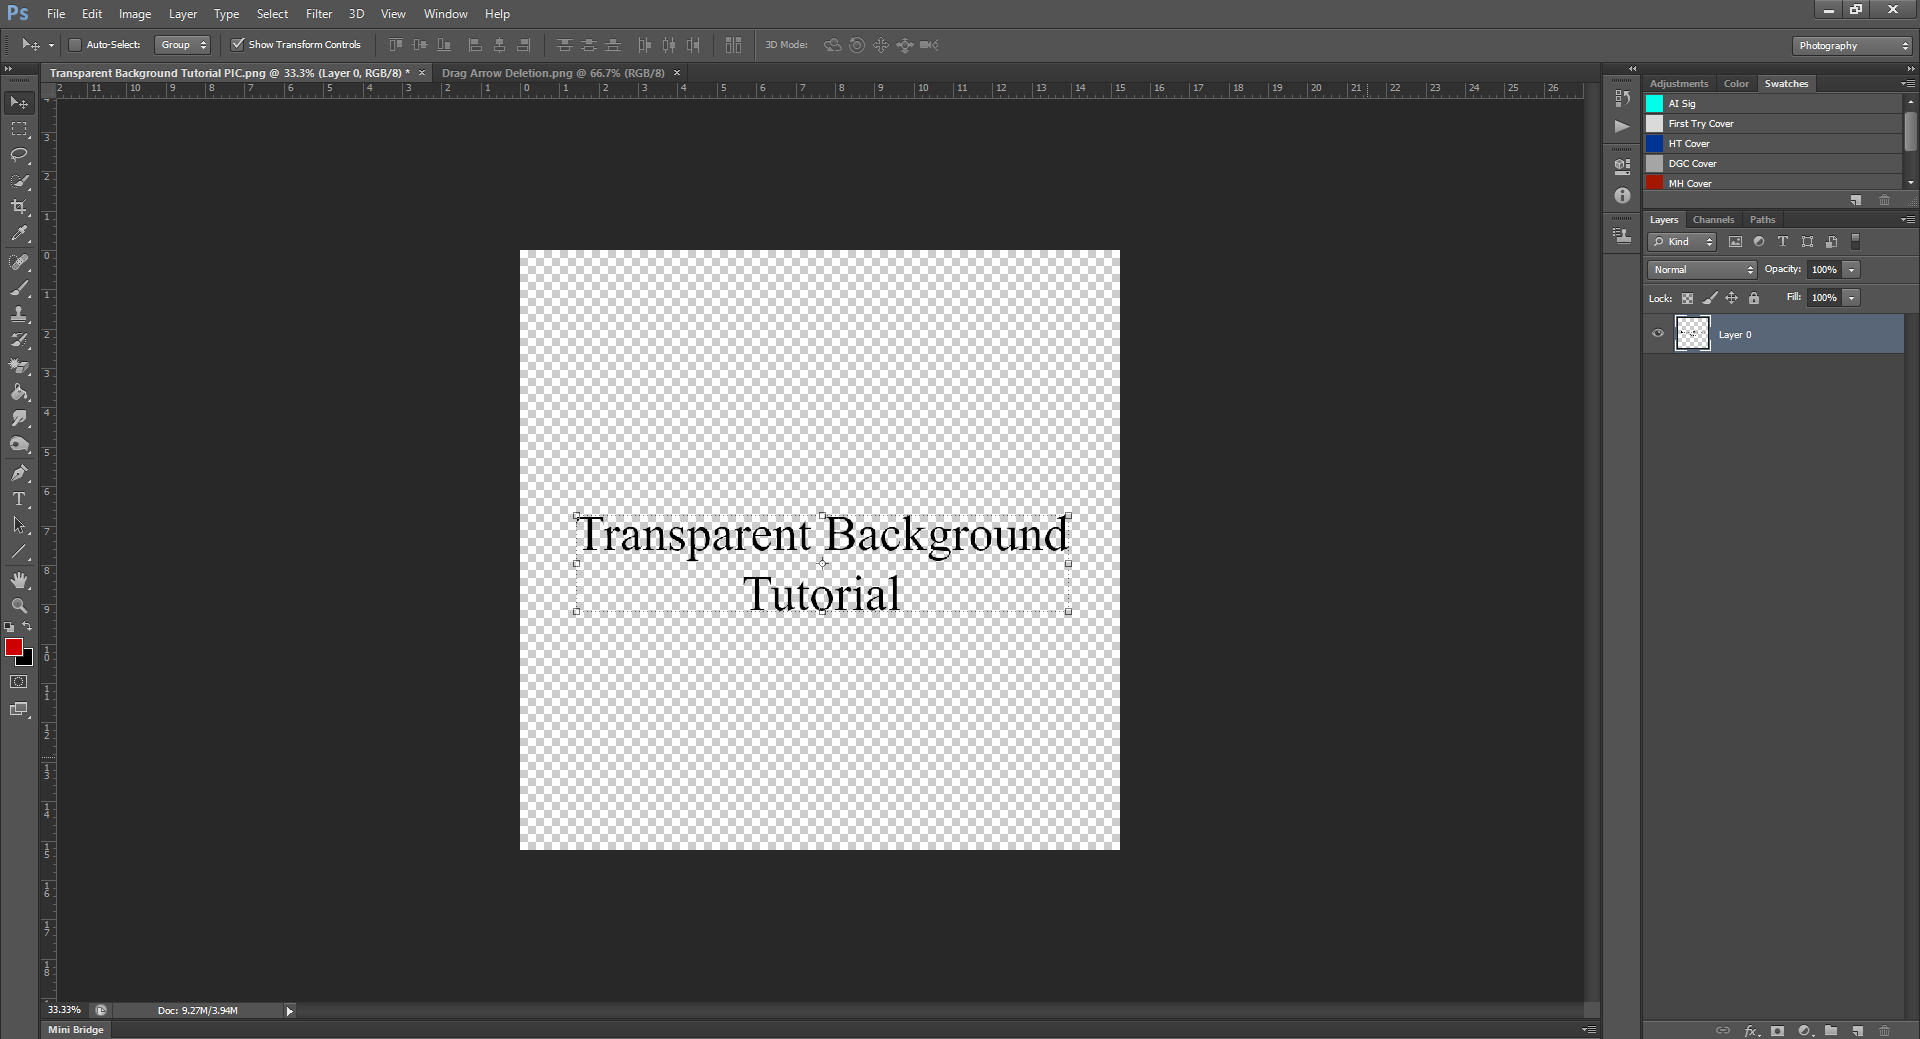 AterImber.com - Writing Tips - PHSH Tutorial - Making a Transparent Background - Grey and White Checkers